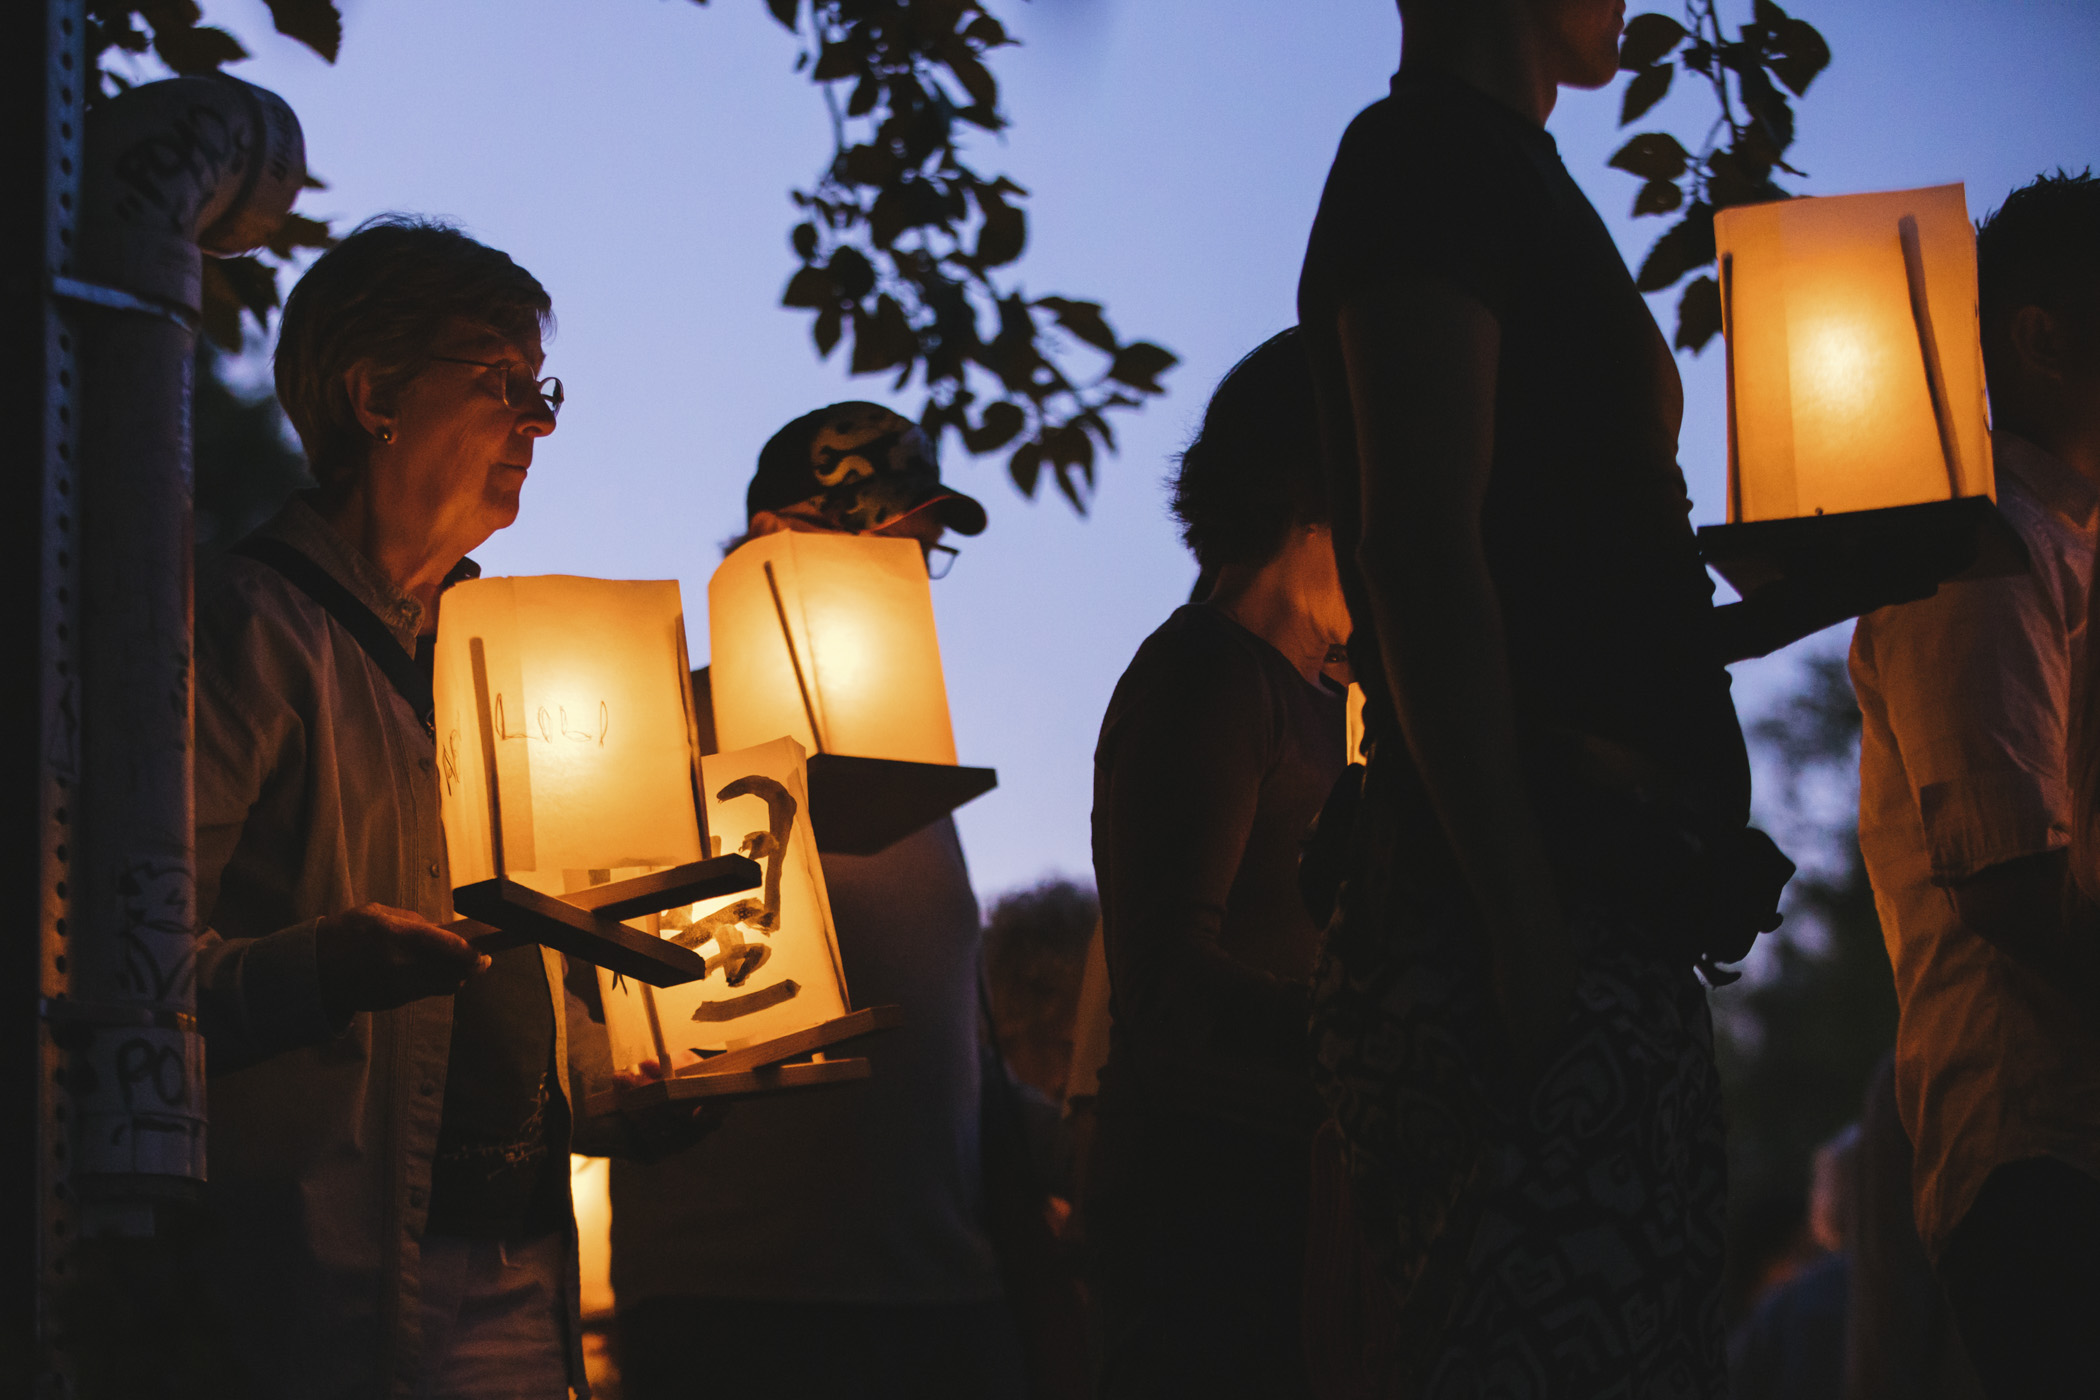 Over 1,000 candle-lit lanterns carrying messages of peace and hope floated across Green Lake during From Hiroshima To Hope, a commemorative ceremony that marks the 72nd anniversary of the atomic bombings of Hiroshima and Nagasaki. (Sunita Martini / Seattle Refined)